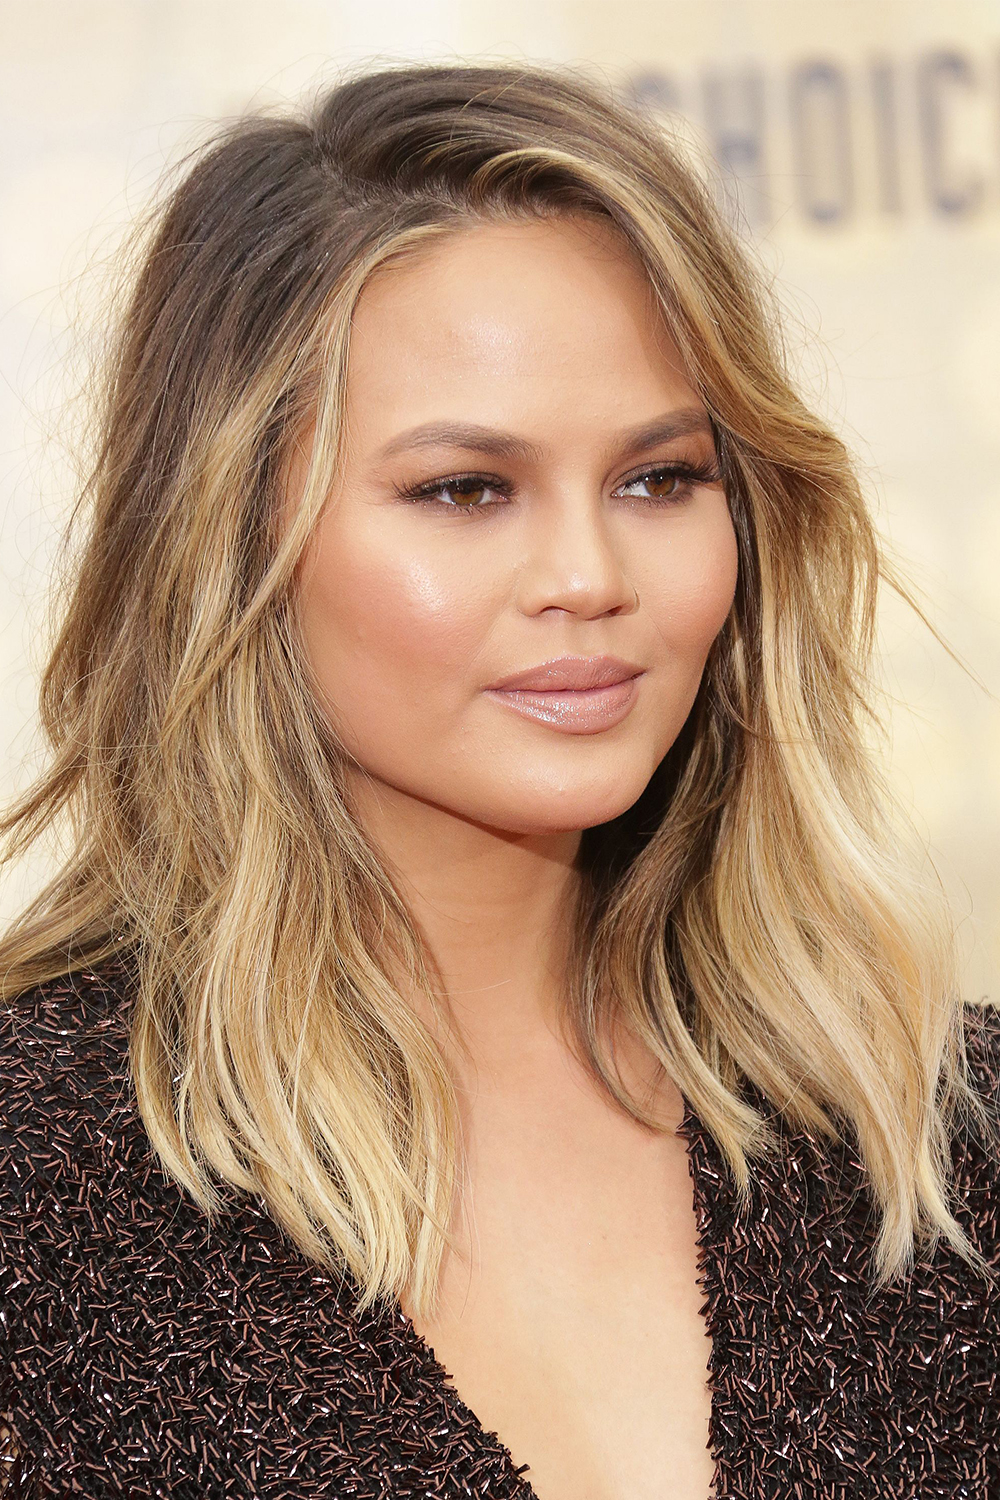 Chrissy Teigen works the balayage look to a tee.